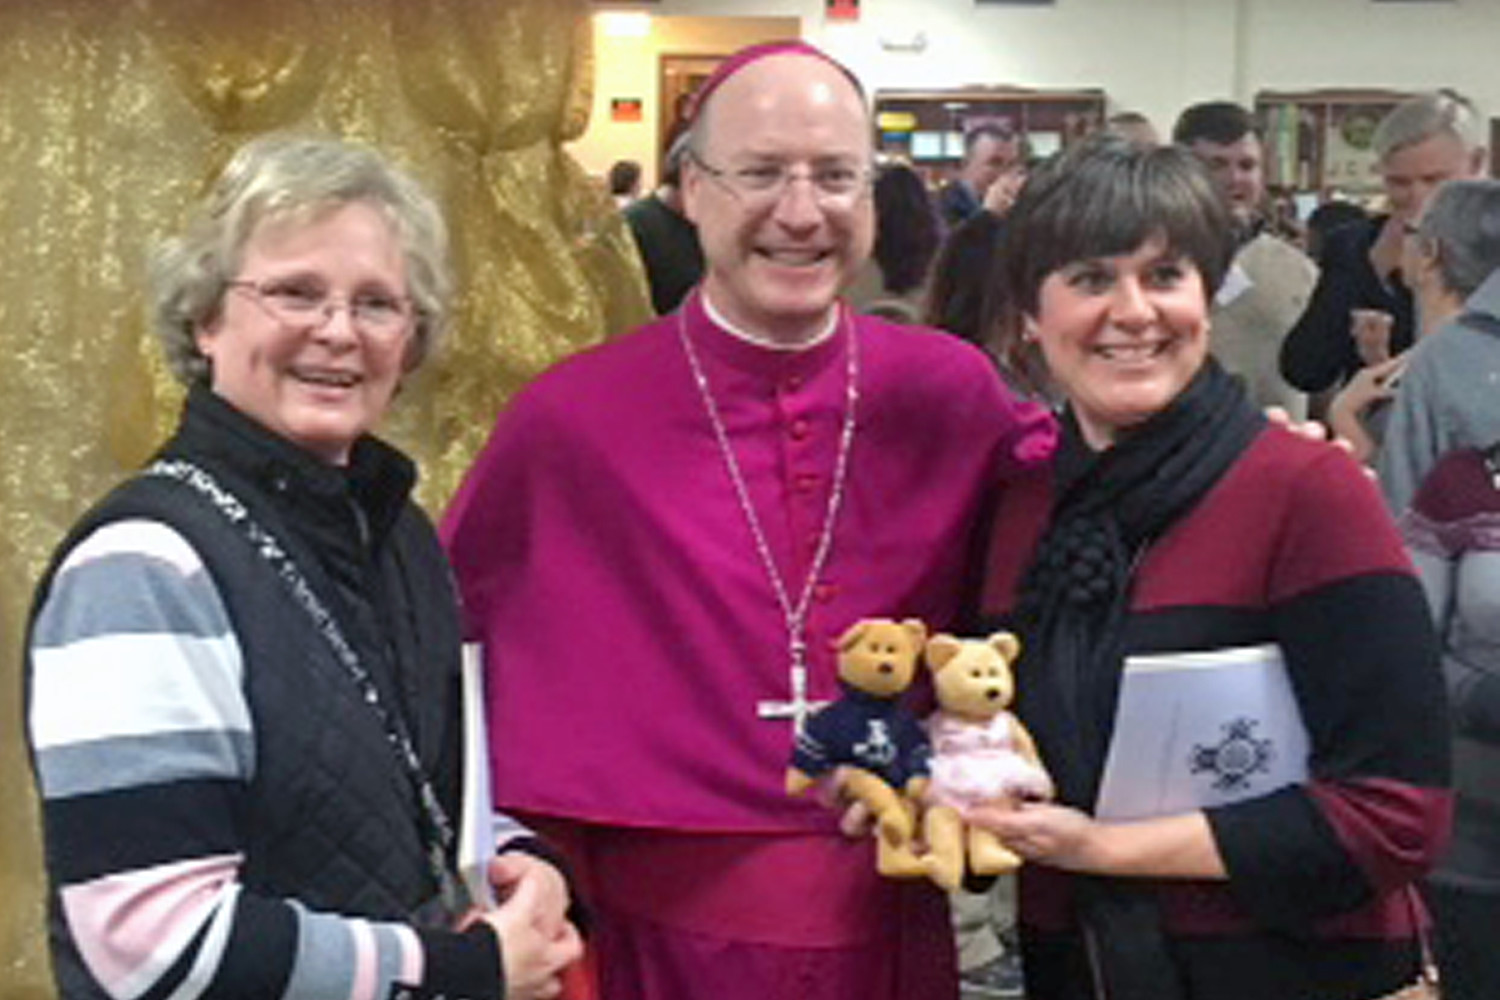 Journal Bears Visit Cathedral During Easter Preparation Rite The